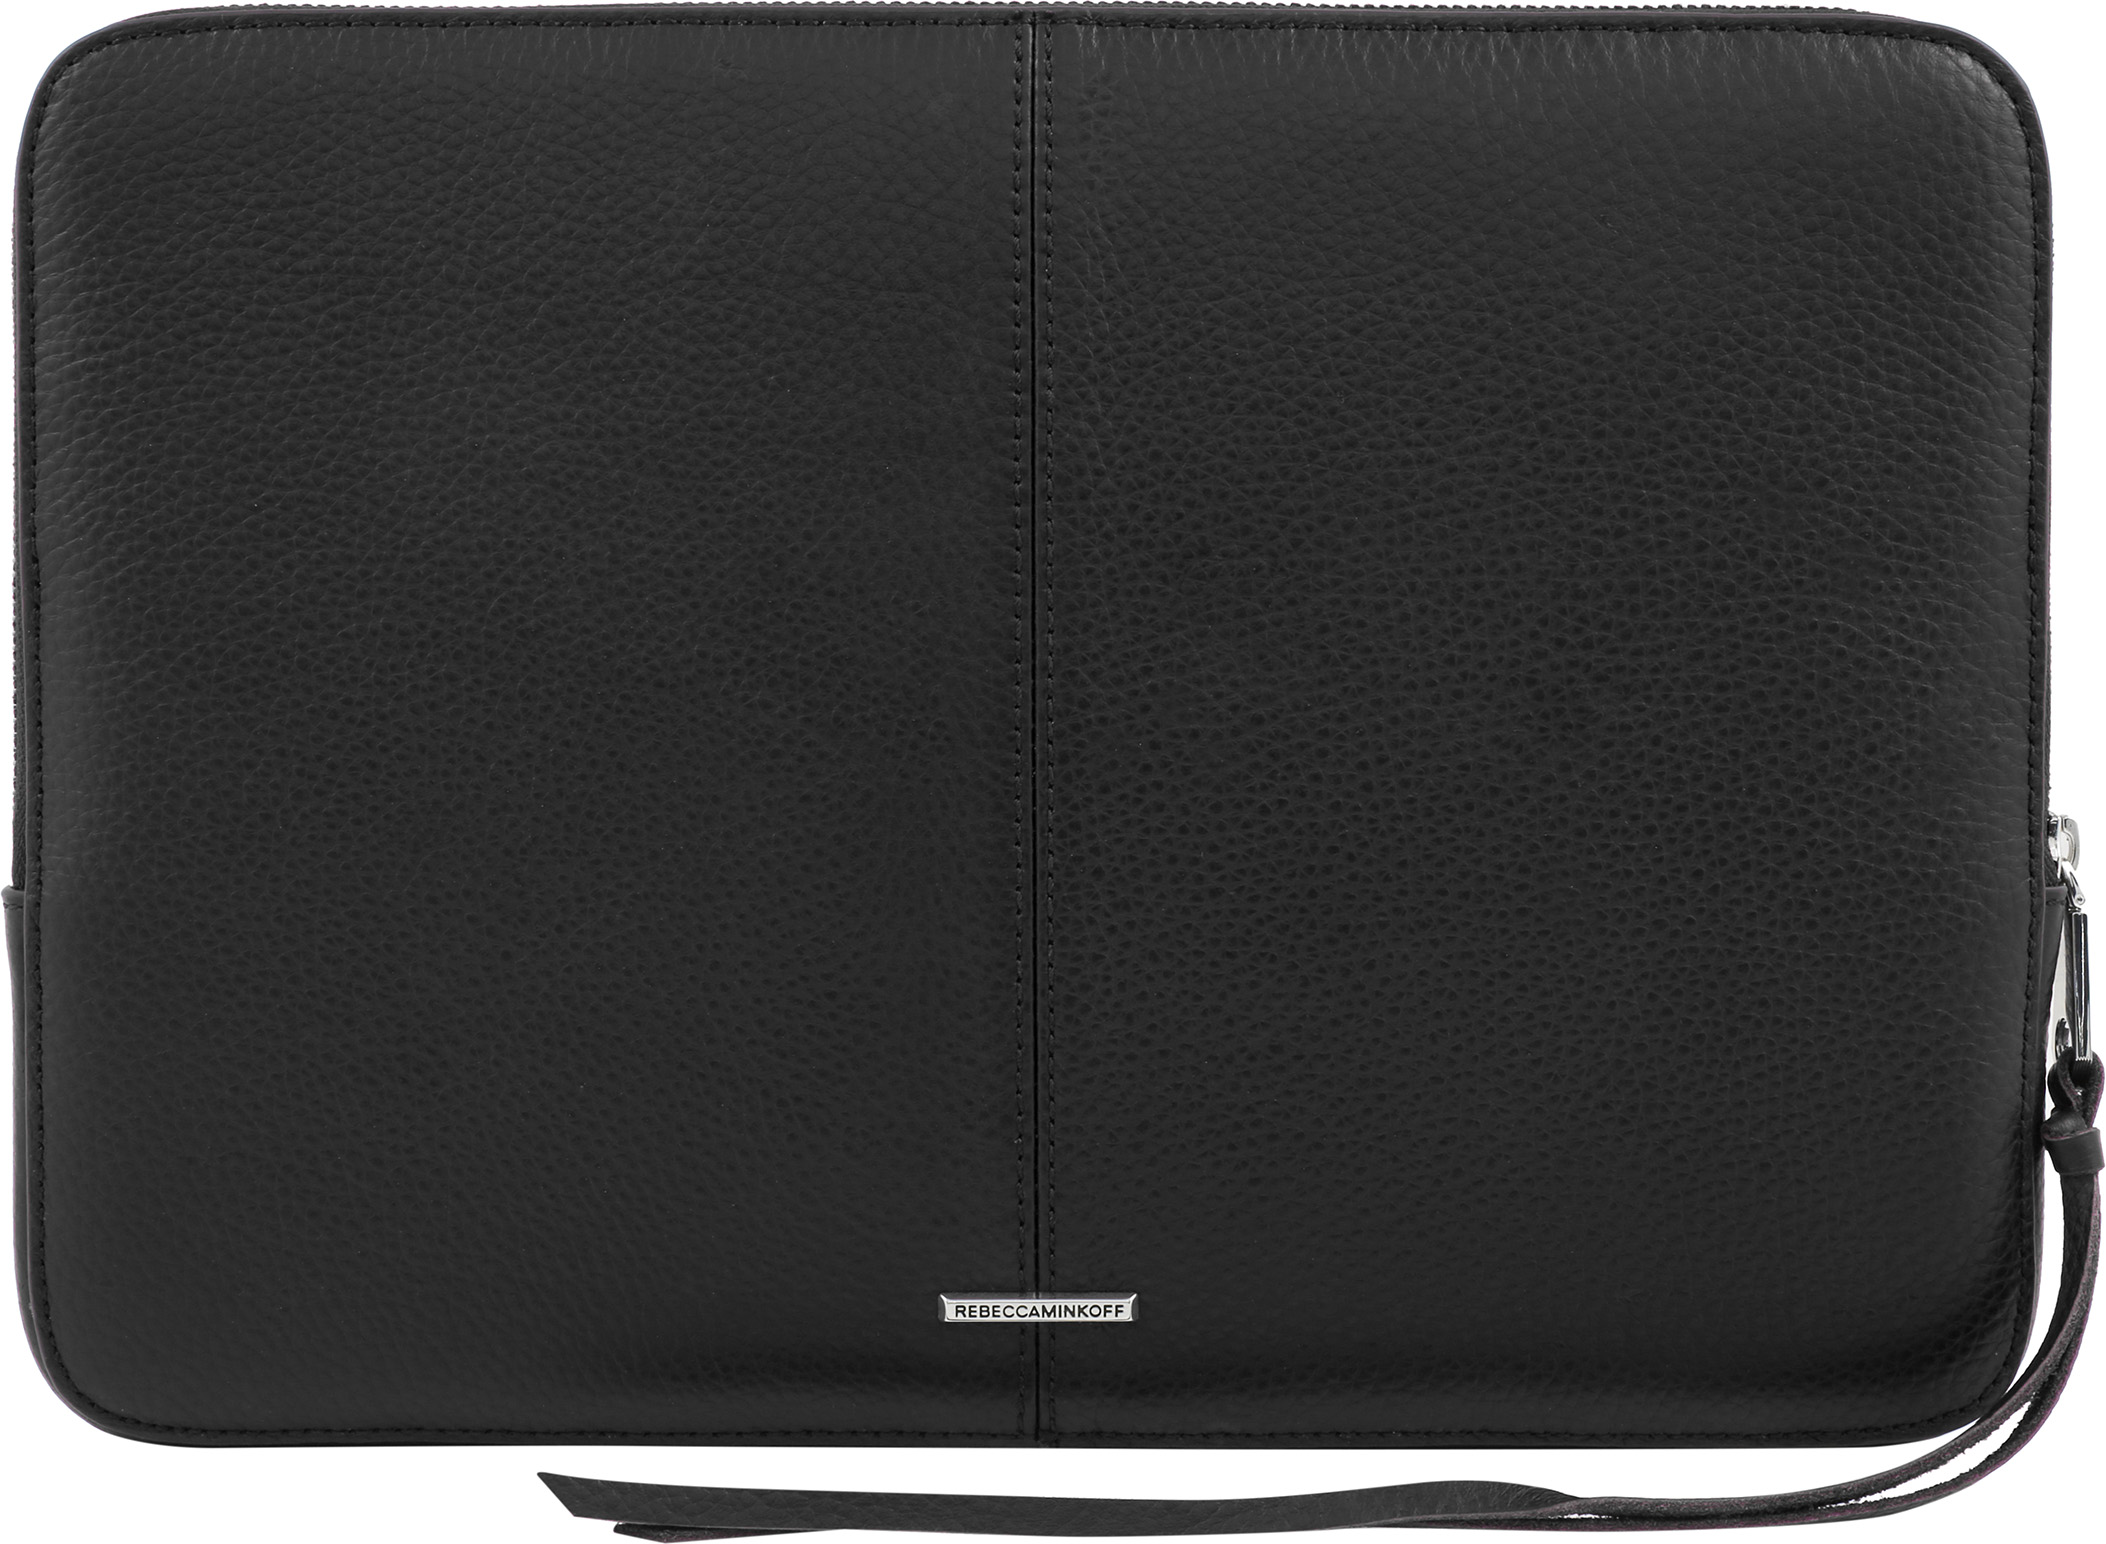 Incipio Rebecca Minkoff's Moto Sleeve Surface Pro (Black)